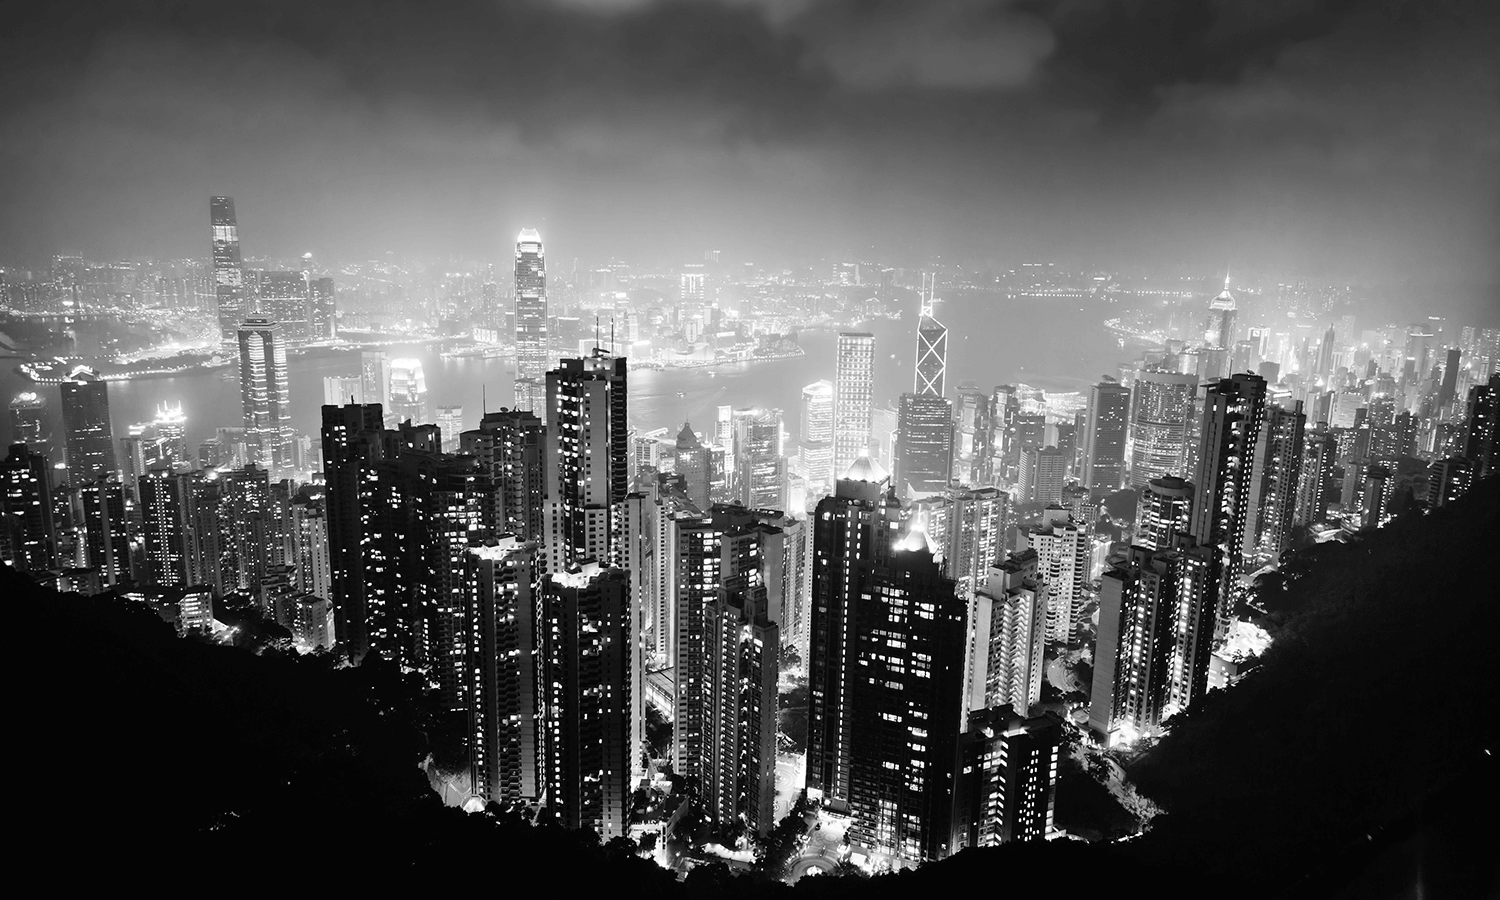 View of both islands in Hong Kong from the mountains